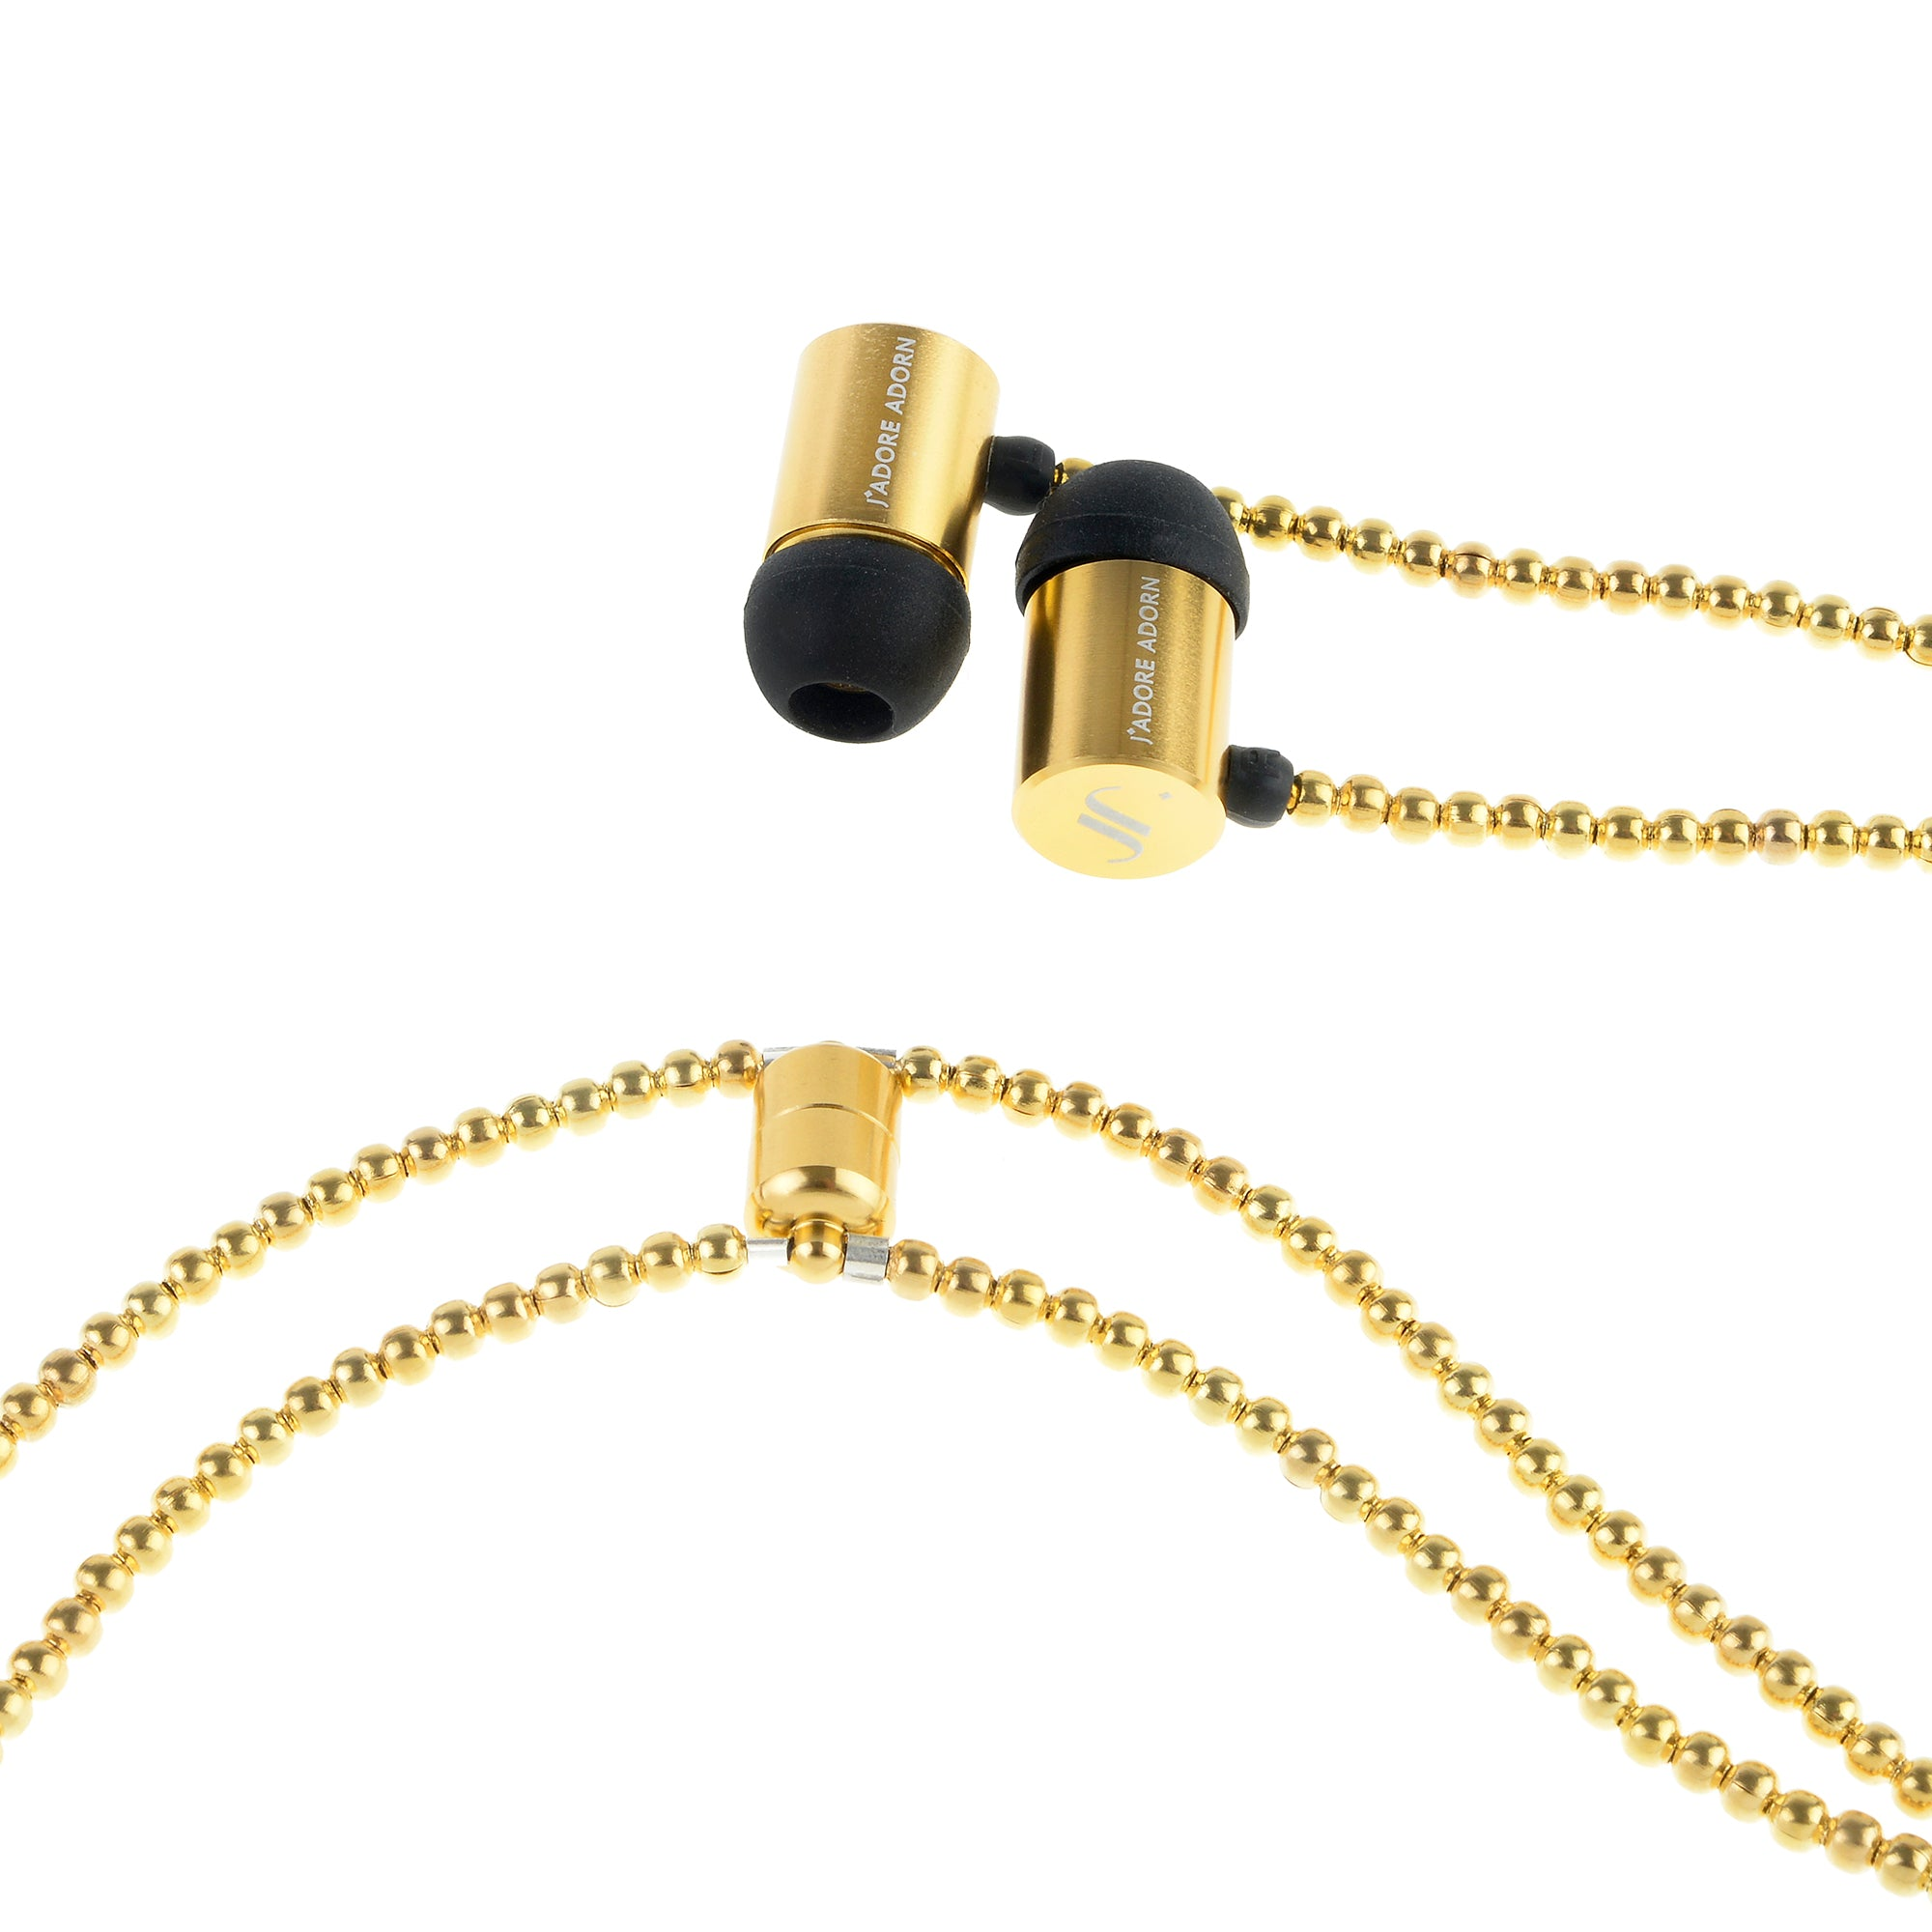 Bluetooth Necklace Earphones - Leopard